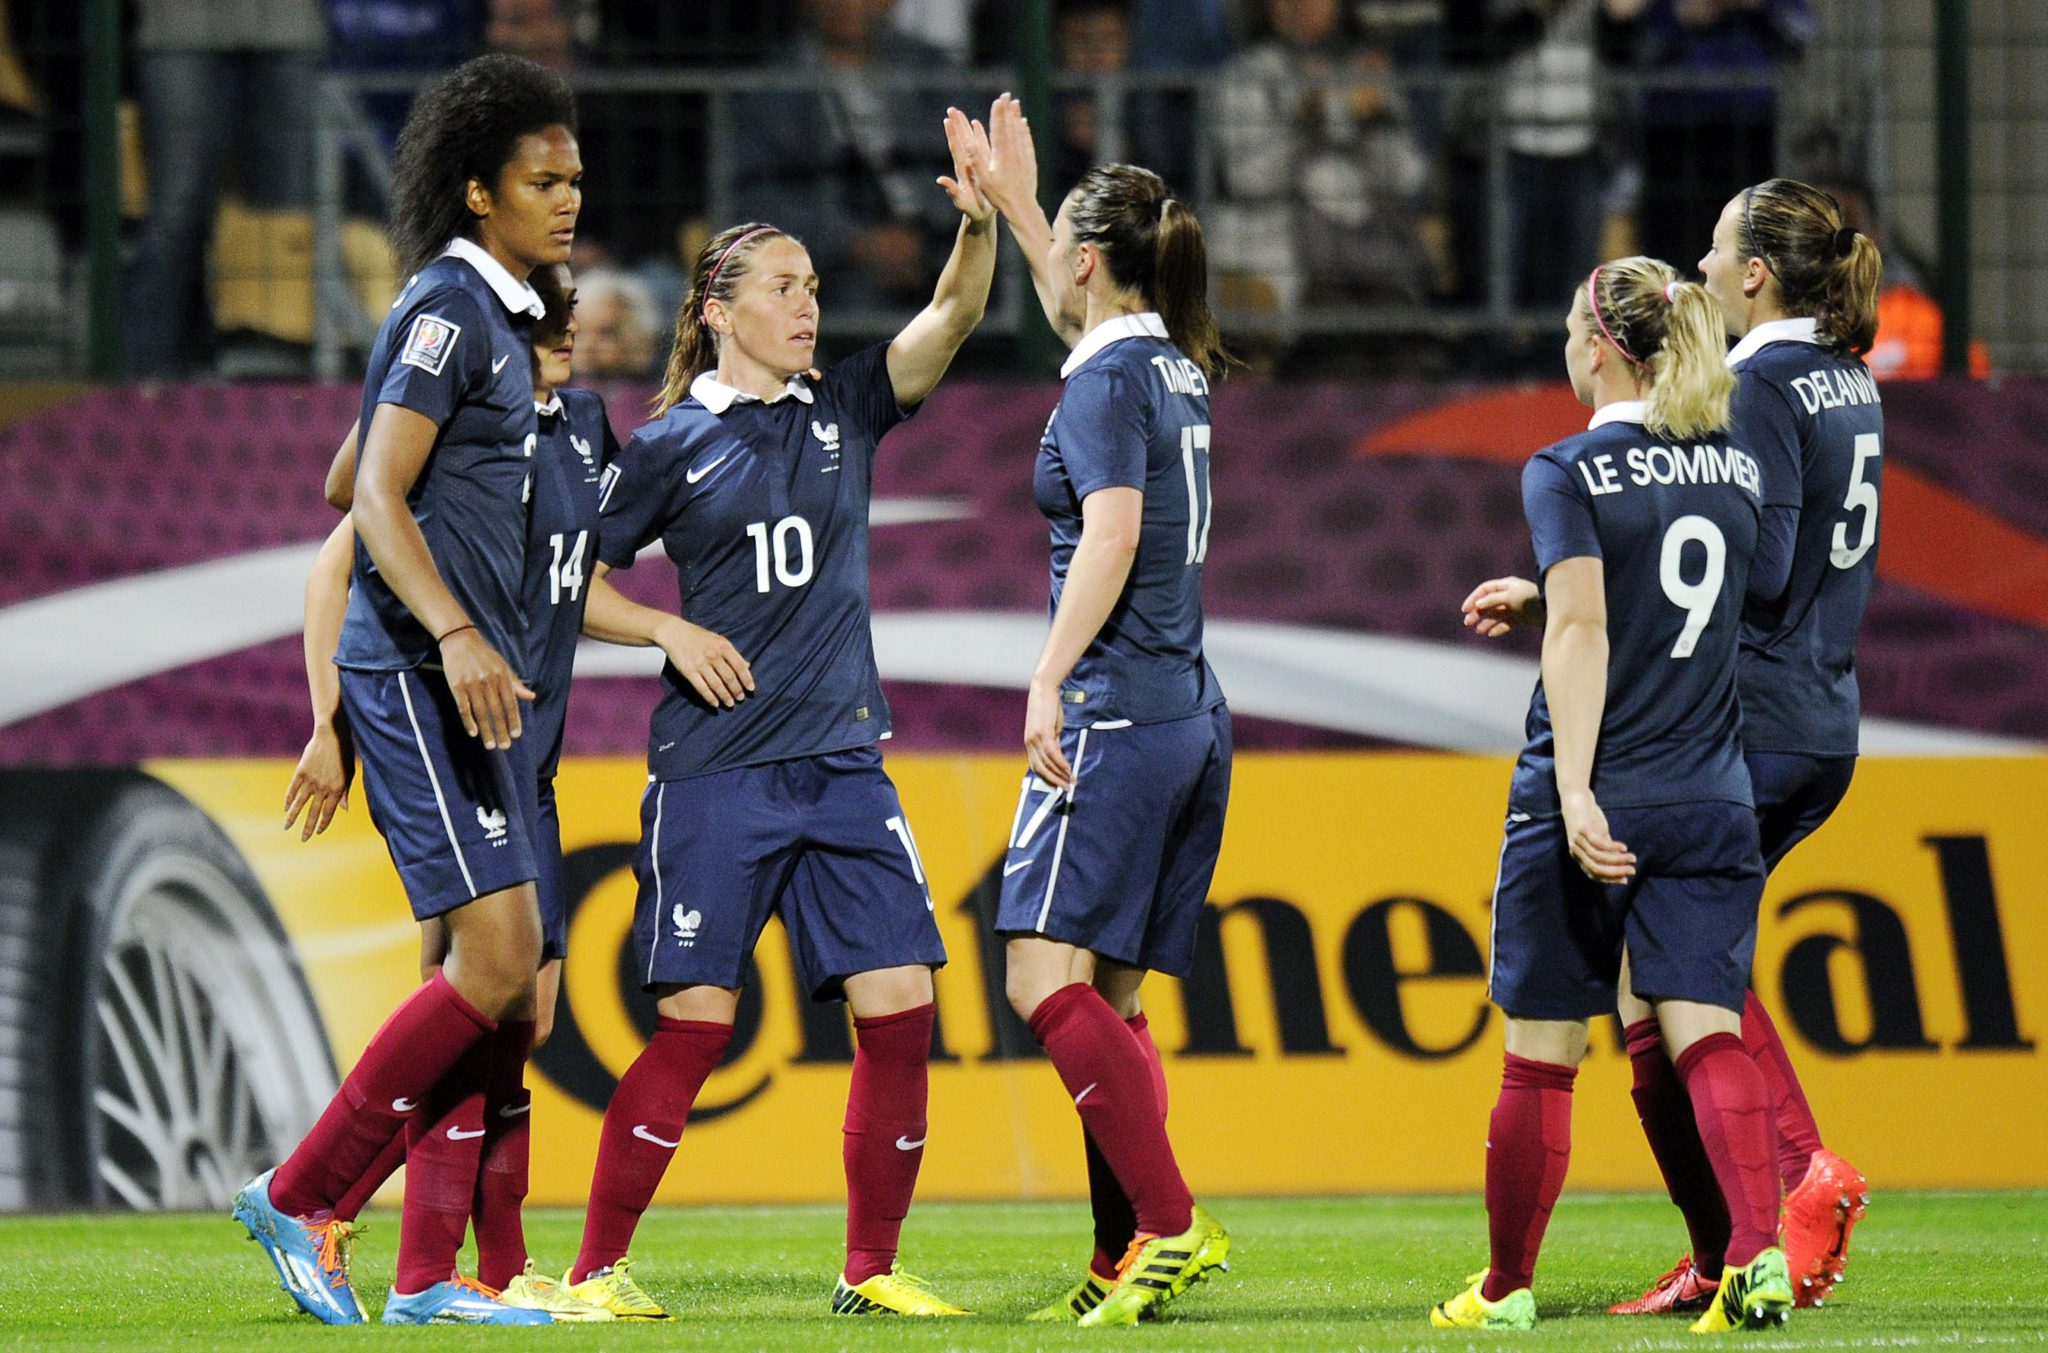 France got its wish and will participate in the 2015 Algarve Cup. (Getty Images)